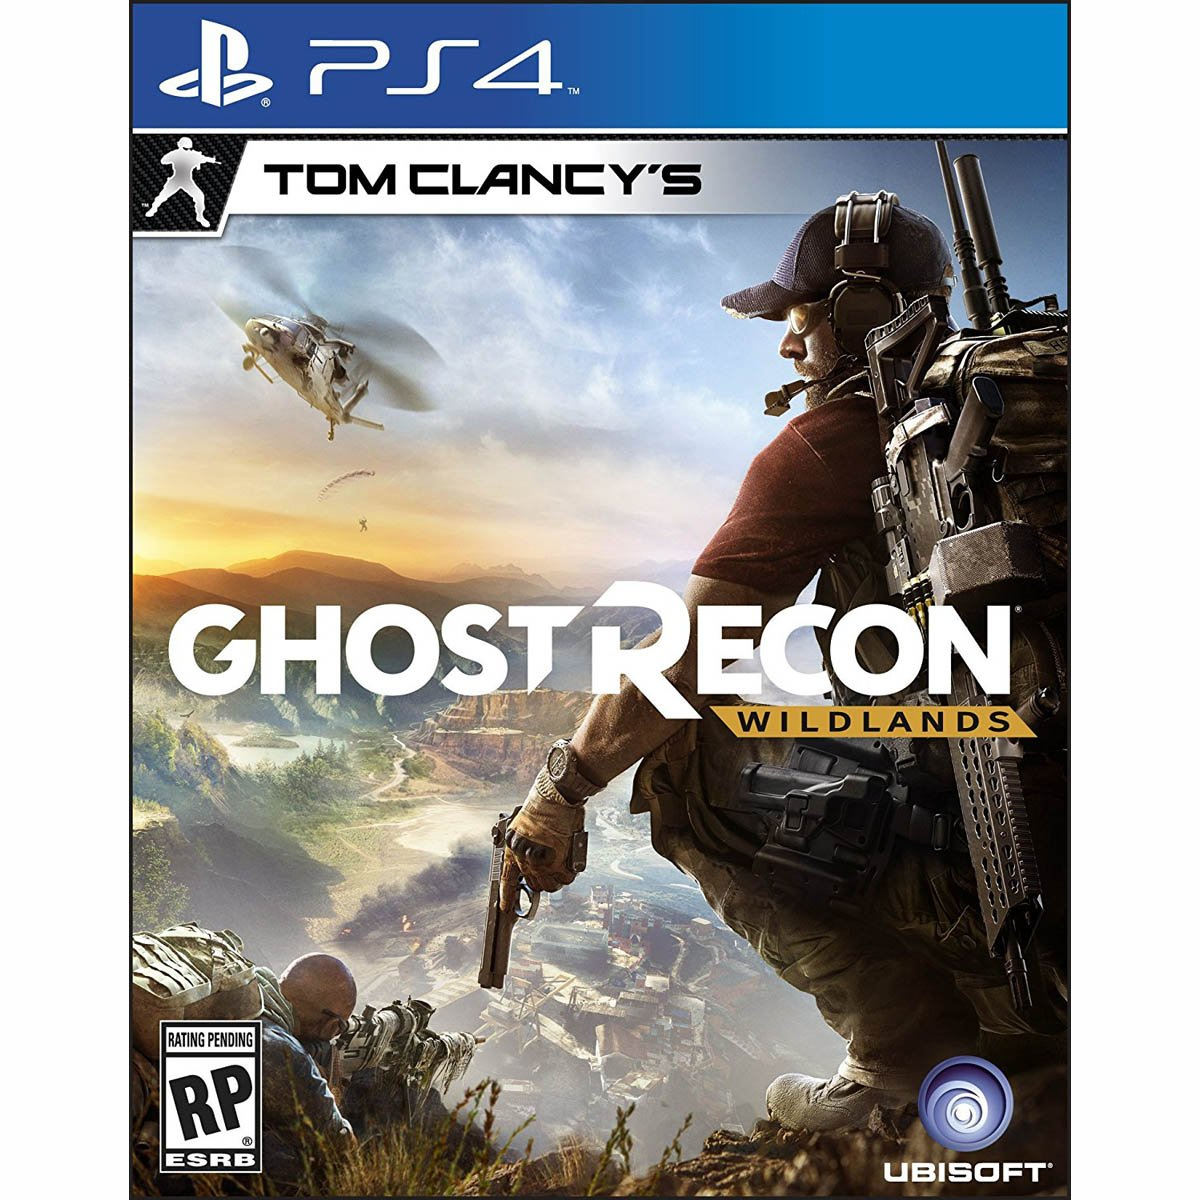 Ps4 Ghost Recon Wildlands Limited